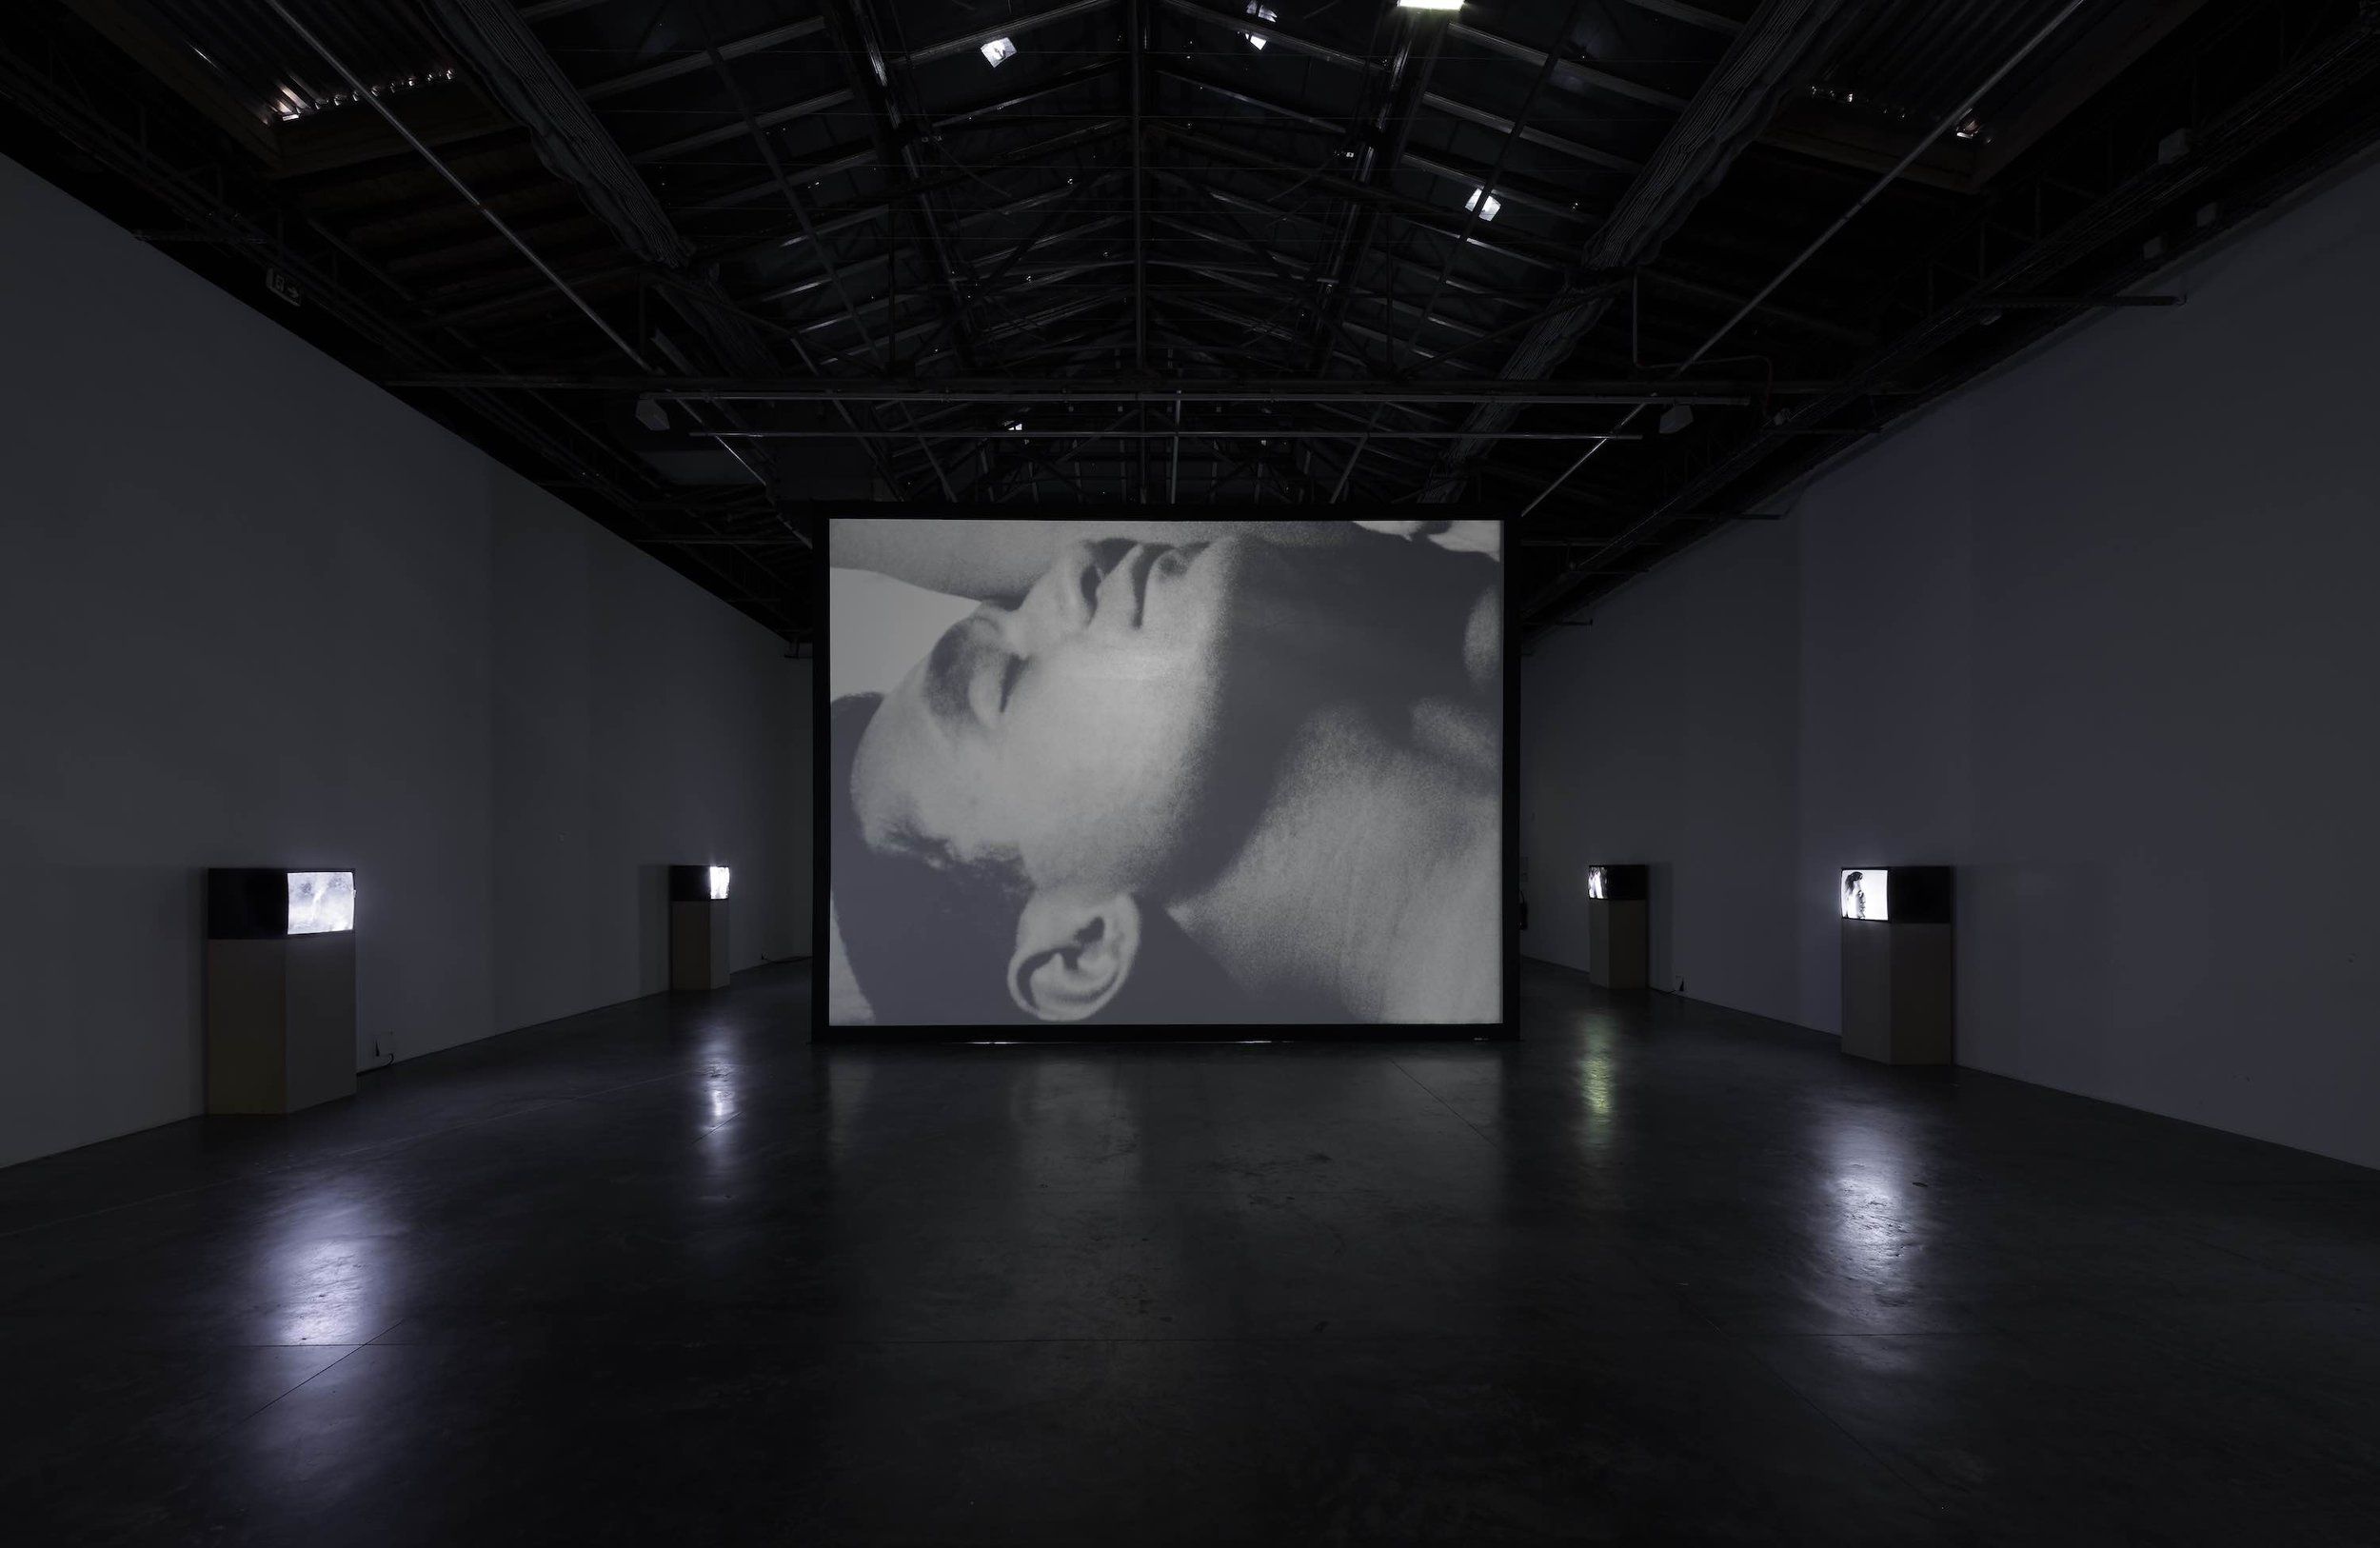 Ugo Rondinone: I LOVE JOHN GIORNO Installation View of Sleep by Andy Warhol, 1963, at Palais de Tokyo, 2015 ©The Andy Warhol Museum, Pittsburgh; Founding Collection, 2017 The Andy warhol Foundation for the Visual Arts, Inc./ Artists Rights Society (ARS), New York, Photo: Aurelien Mole